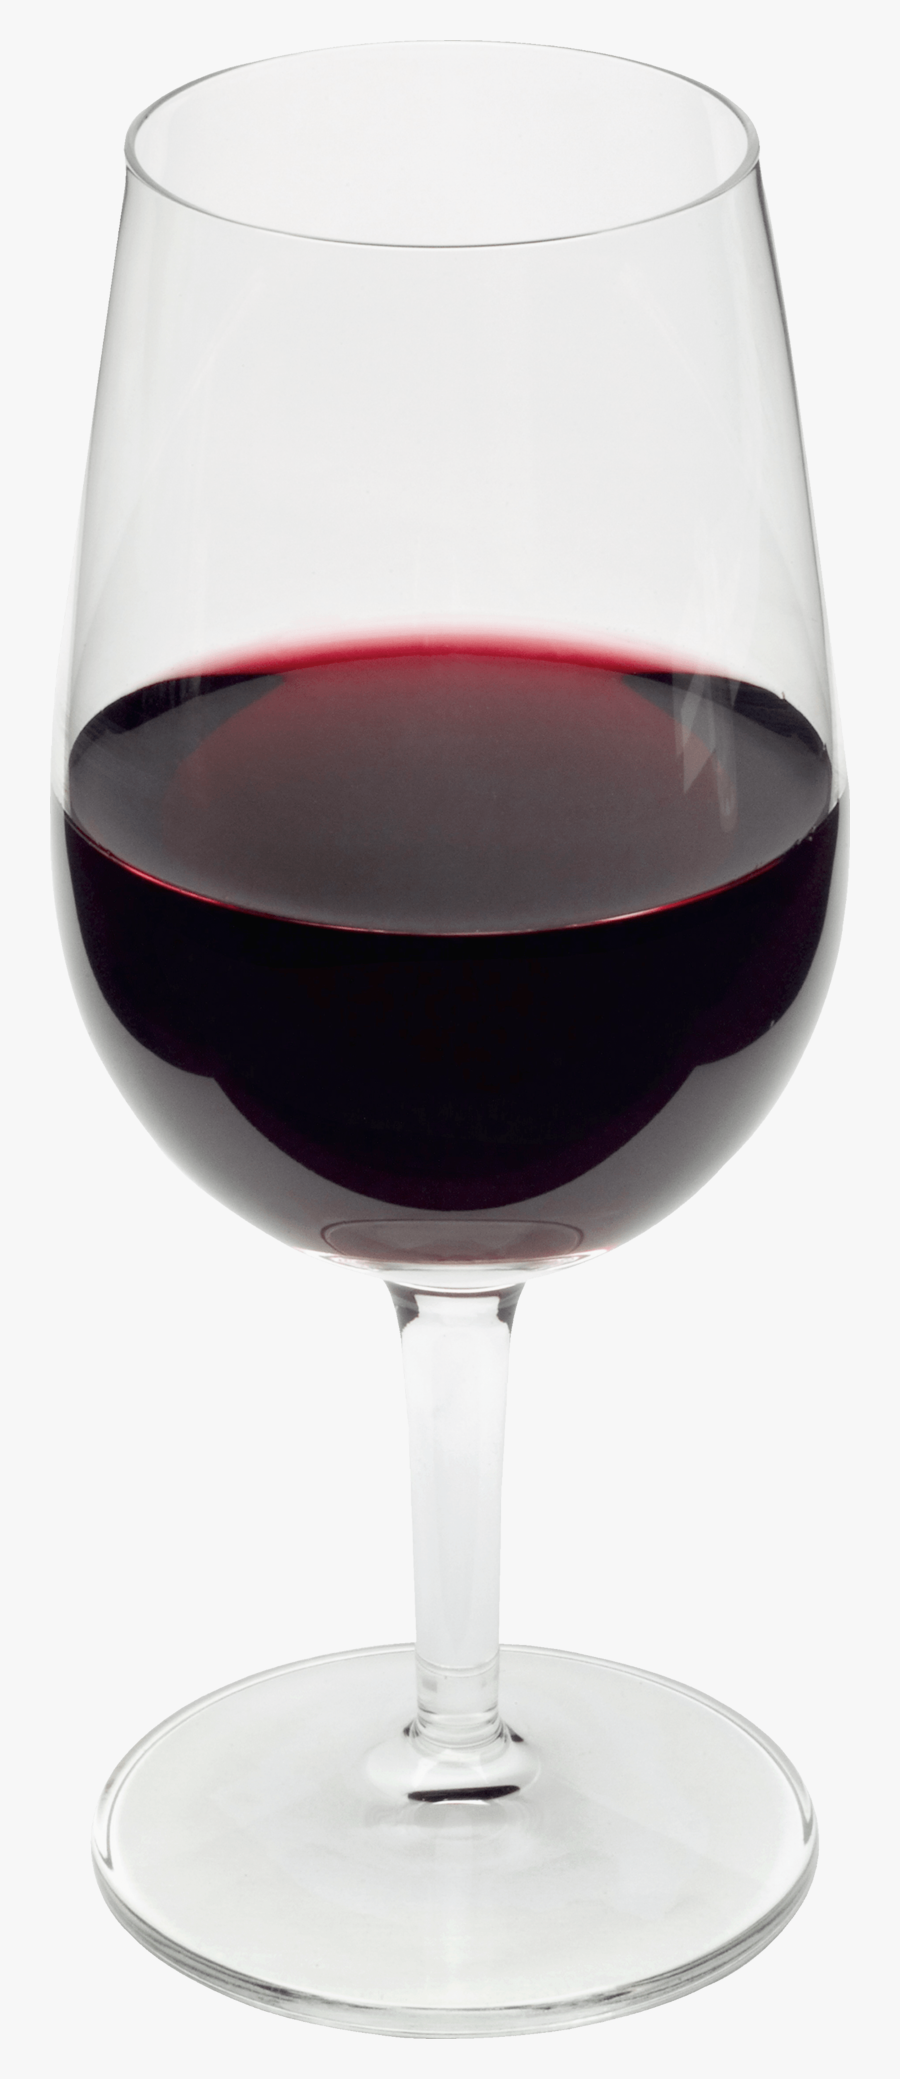 Wine Cup Png - Glass Of Wine Png, Transparent Clipart